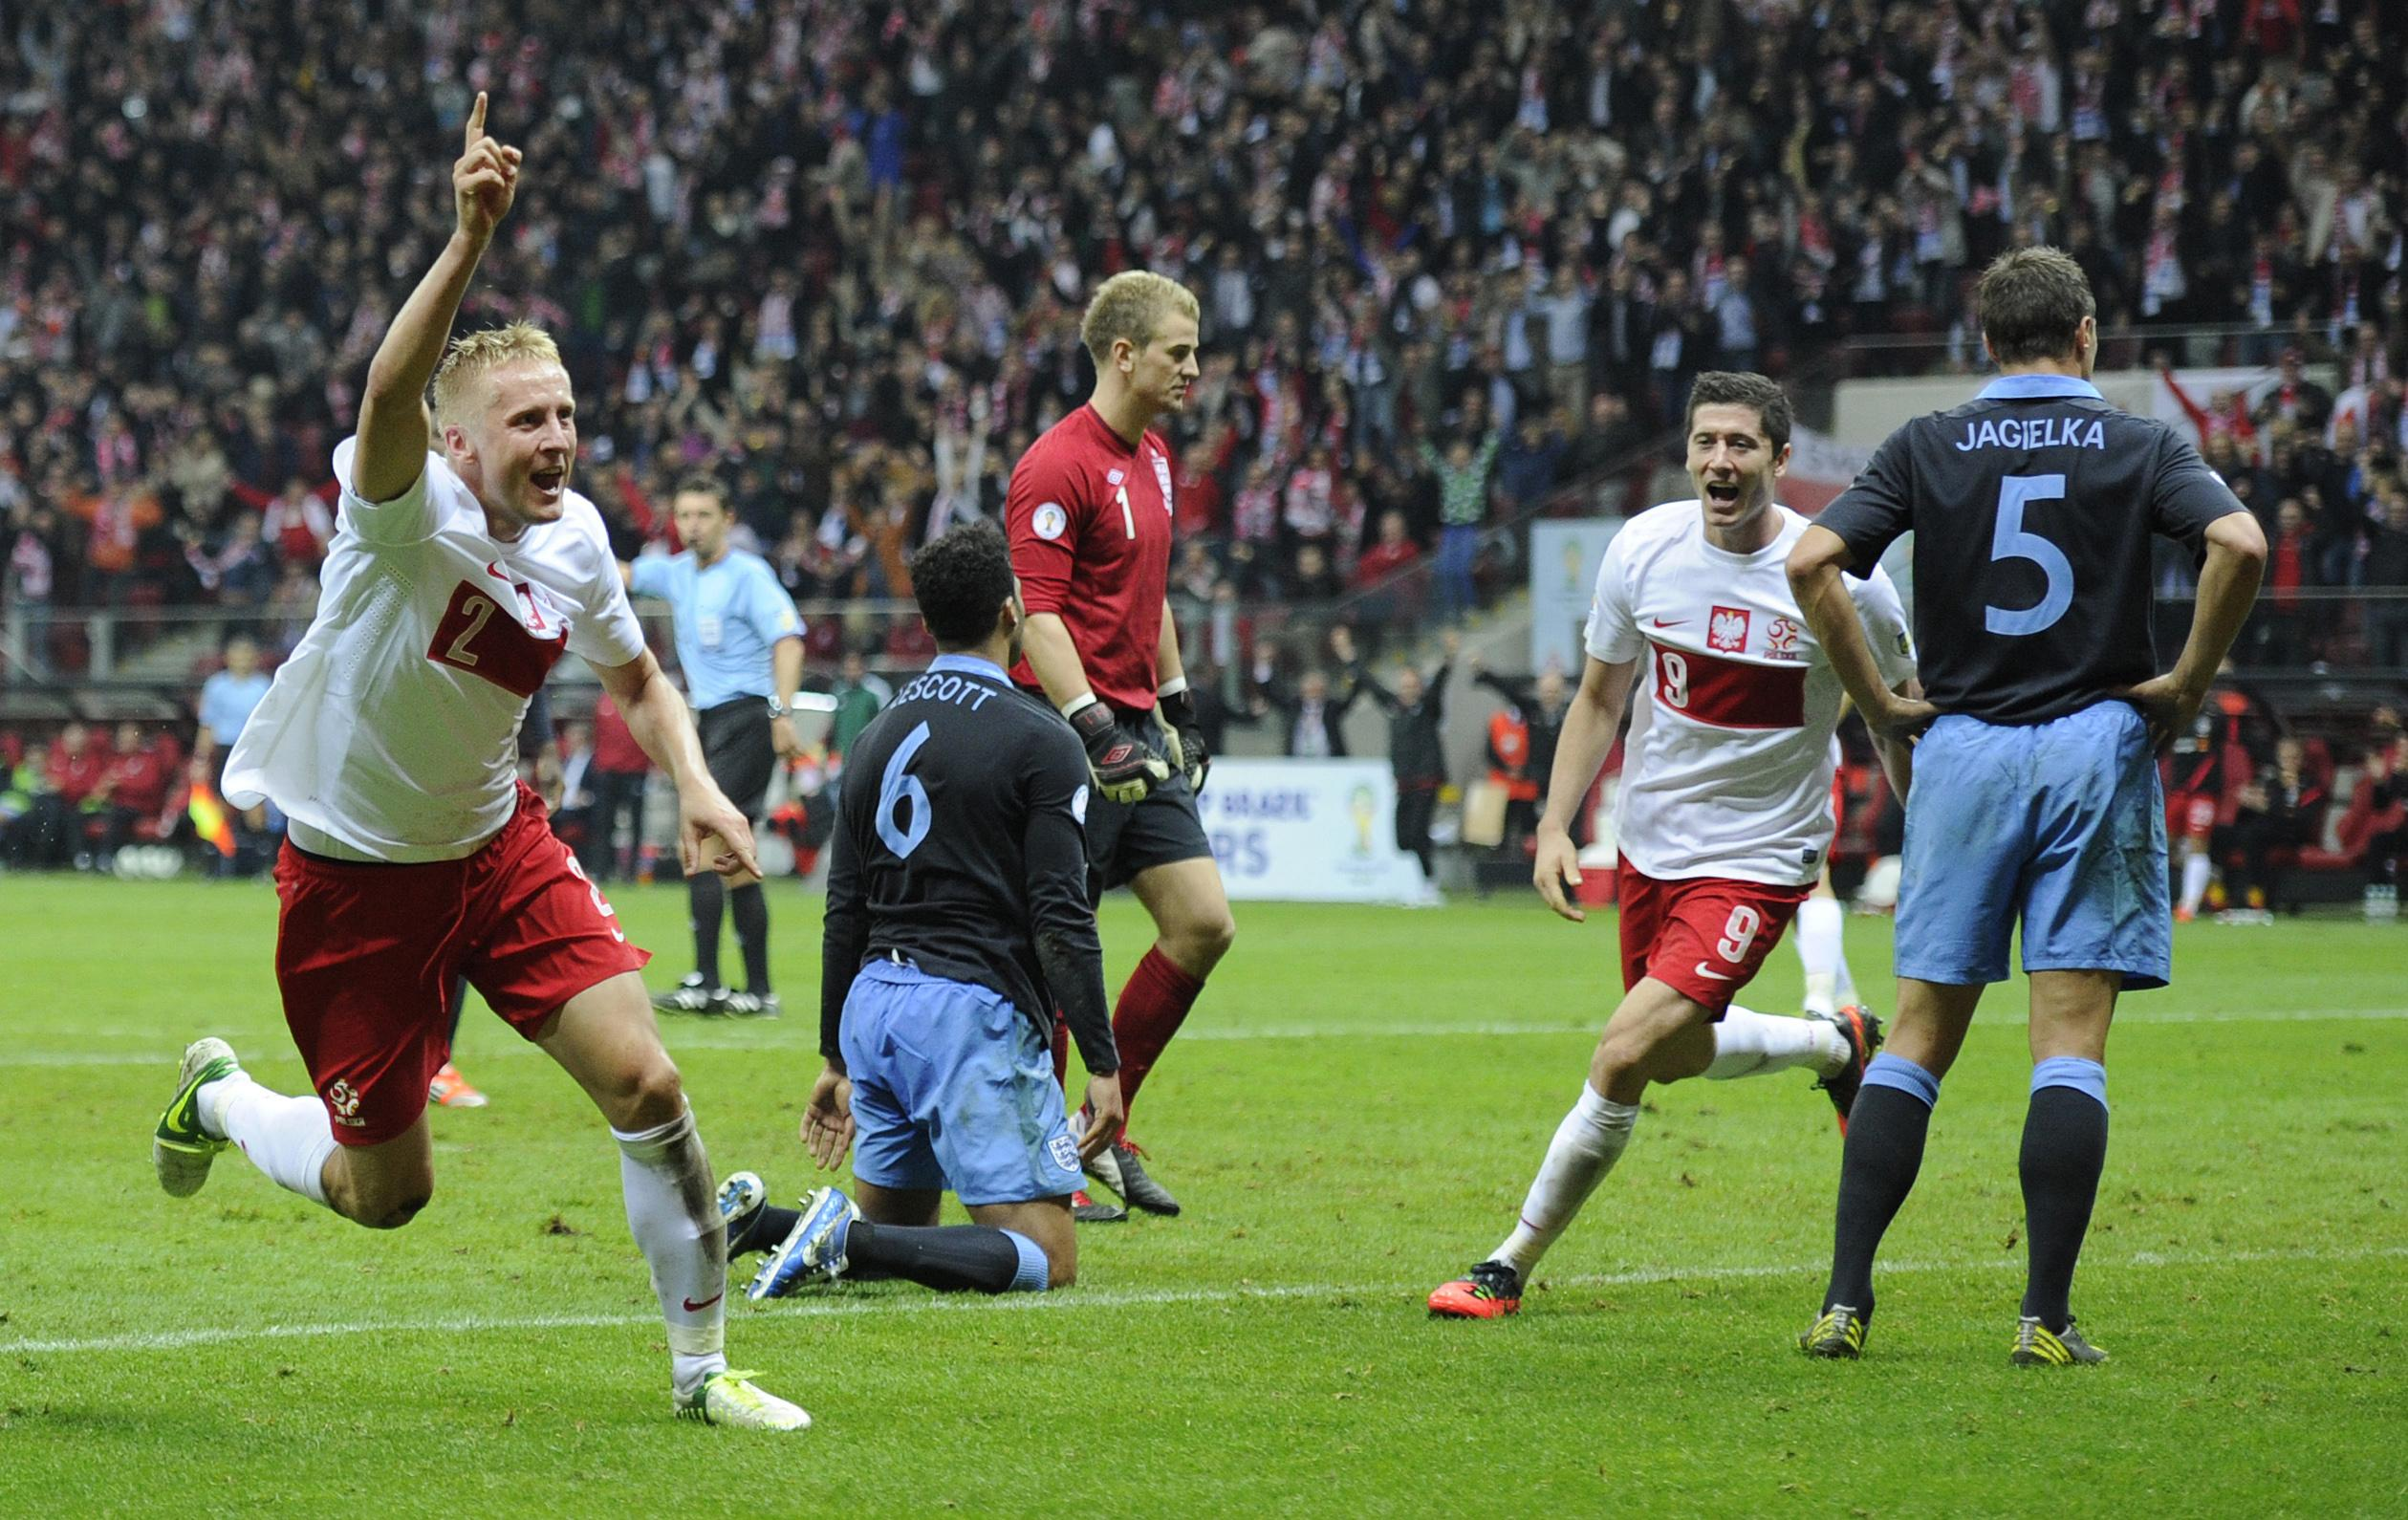 Glik bagged himself a goal against England in 2012. Yes, that is Phil Jagielka and Joleon Lescott